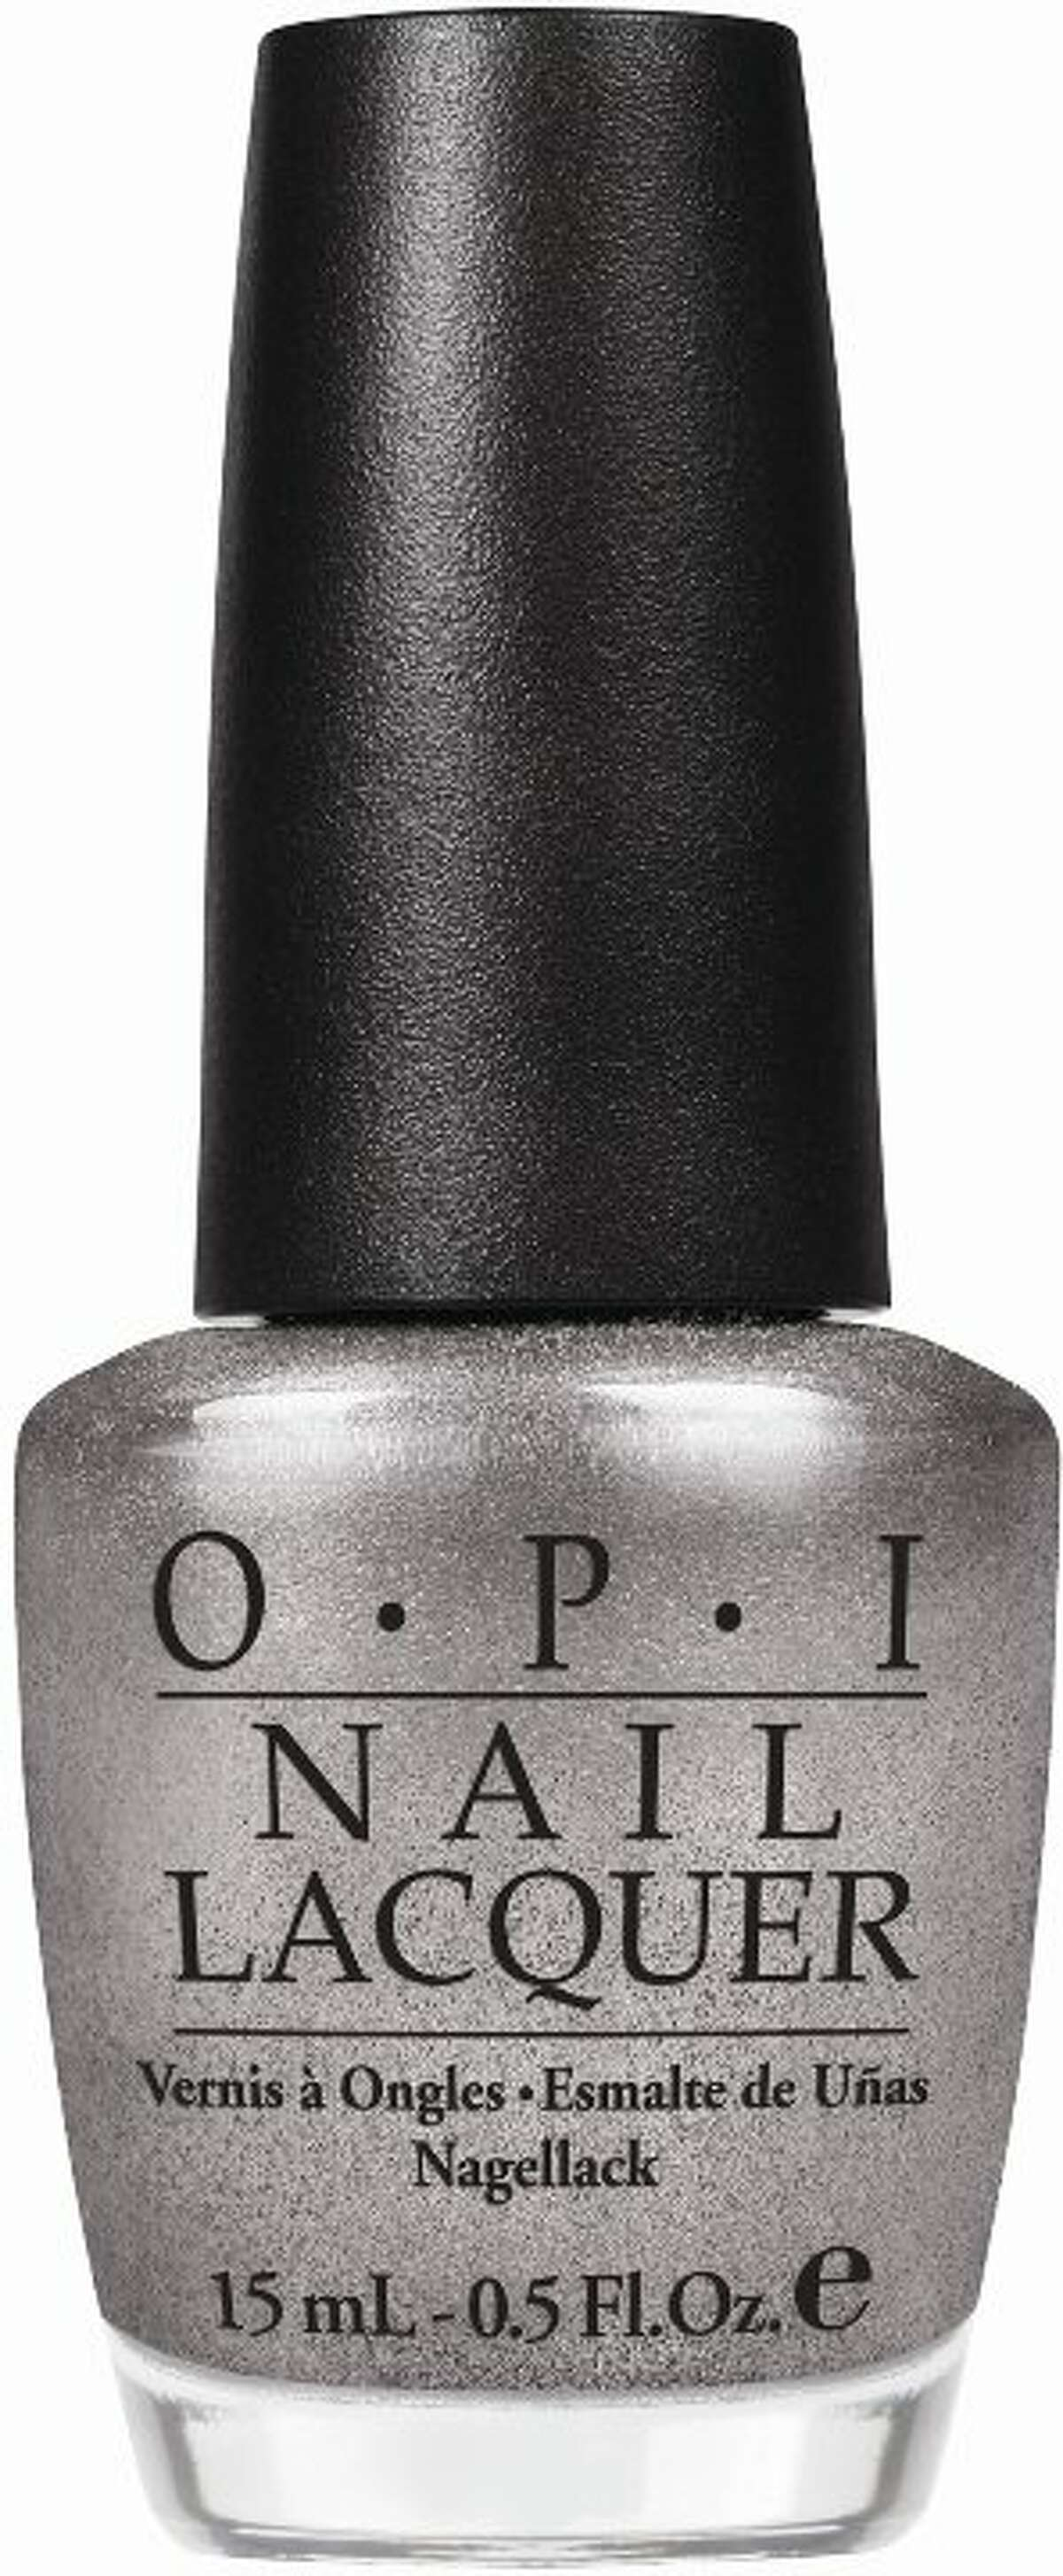 Your Royal Shineness is one of the new shades in Serena Williams' Grand Slam series of nail polishes for O.P.I.